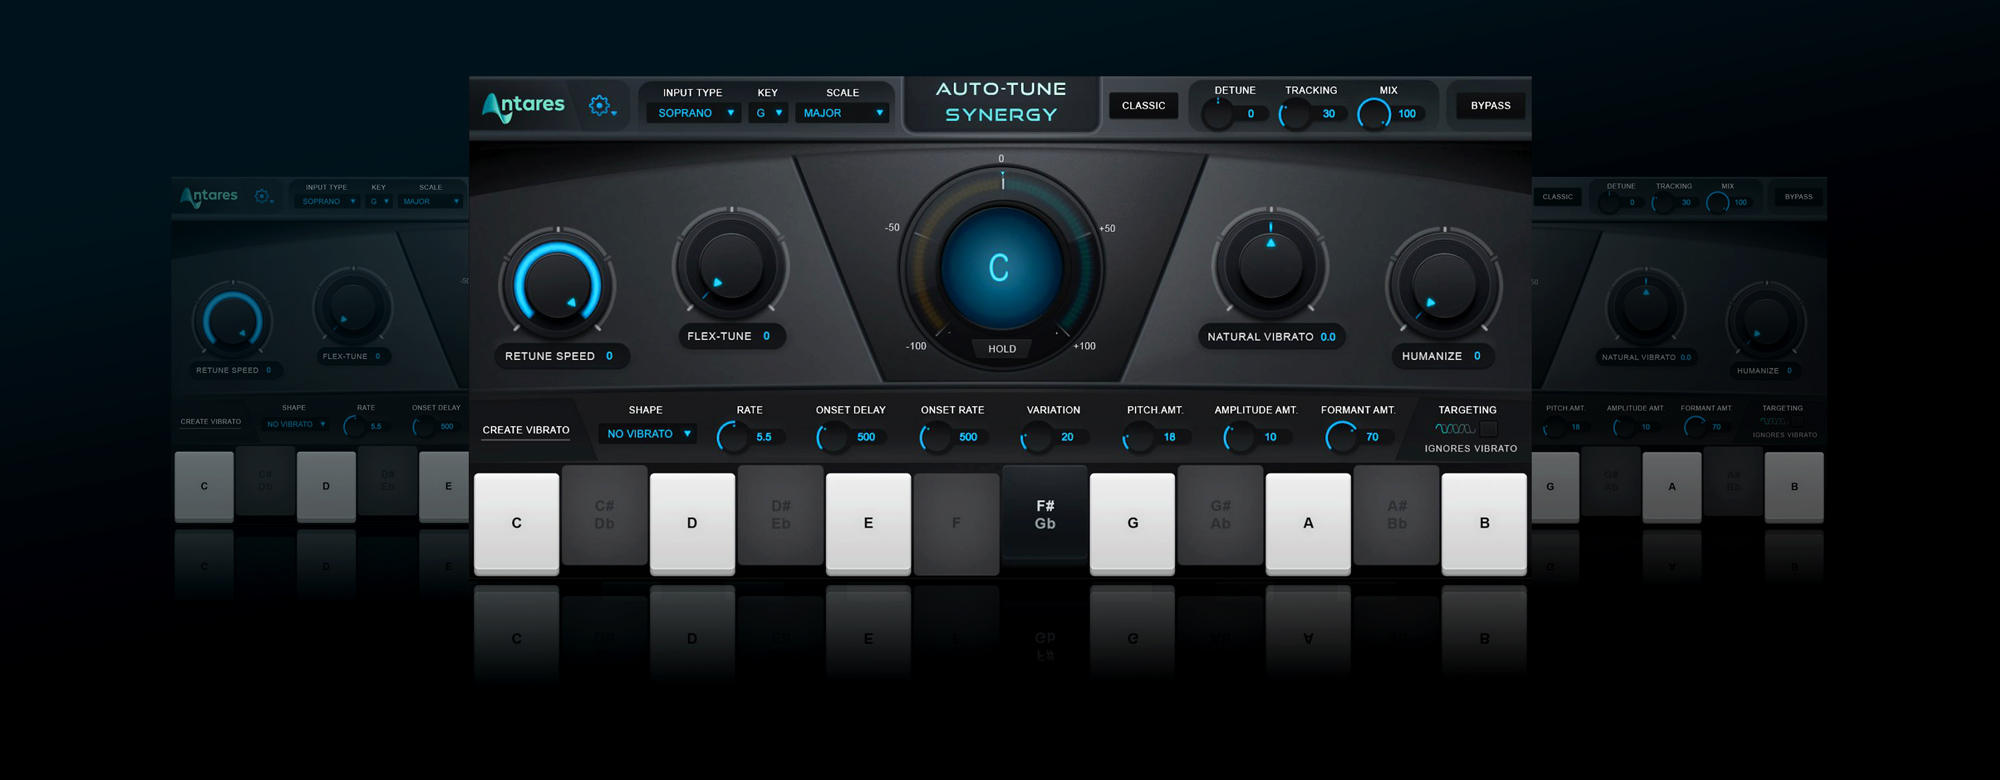 Fine-tune your Vocals with Antares Auto-Tune Synergy